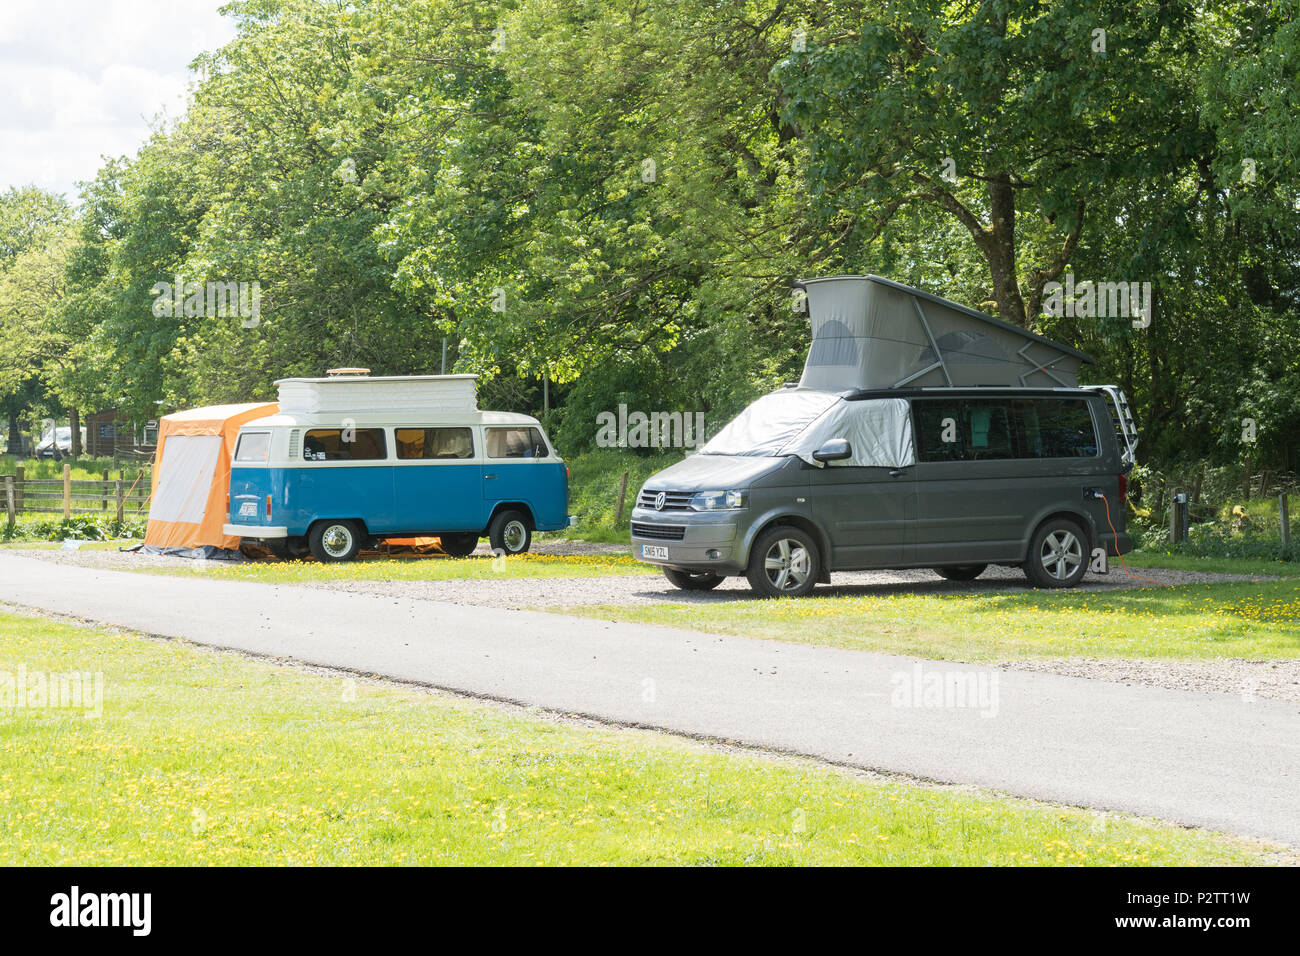 vw campers at Moffat campsite, Scotland, UK - Stock Image